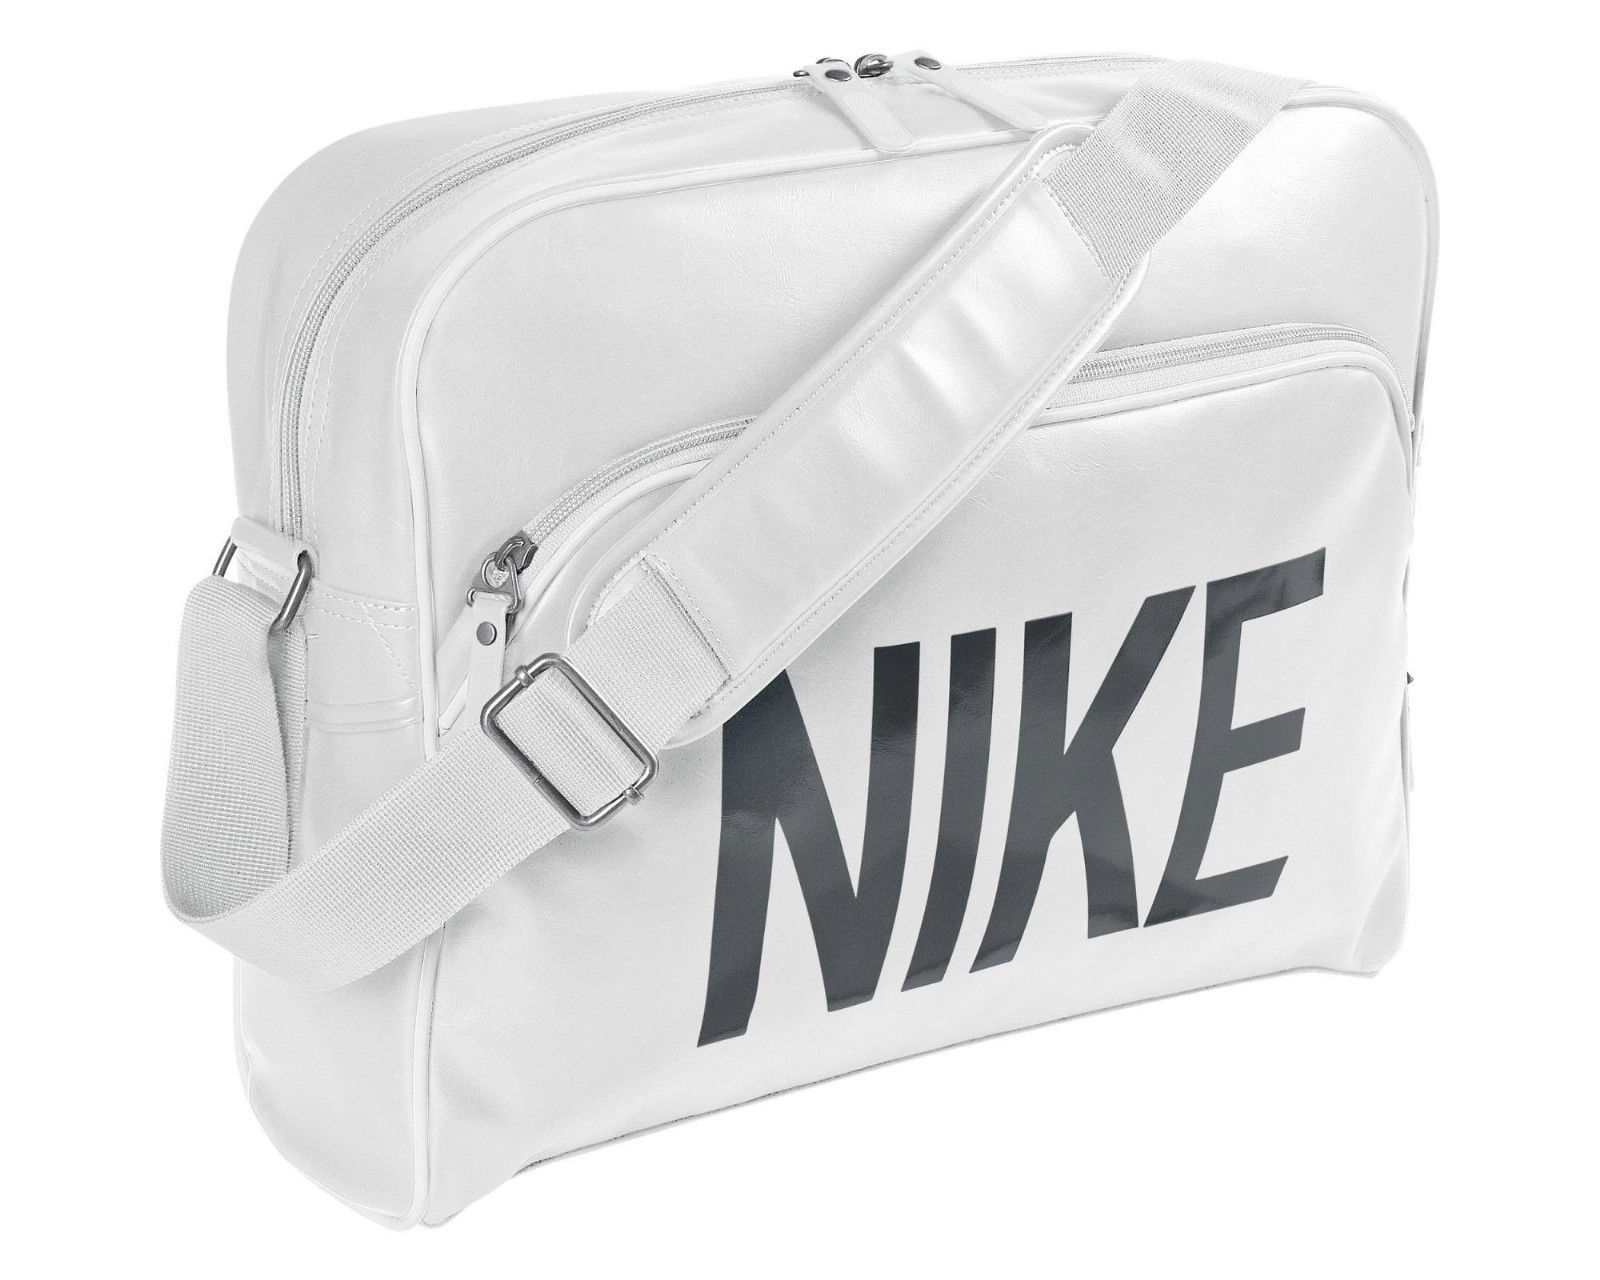 1bf01c7a41 Nike shoulder bag. Handbags and Purses on Bags-Purses.com